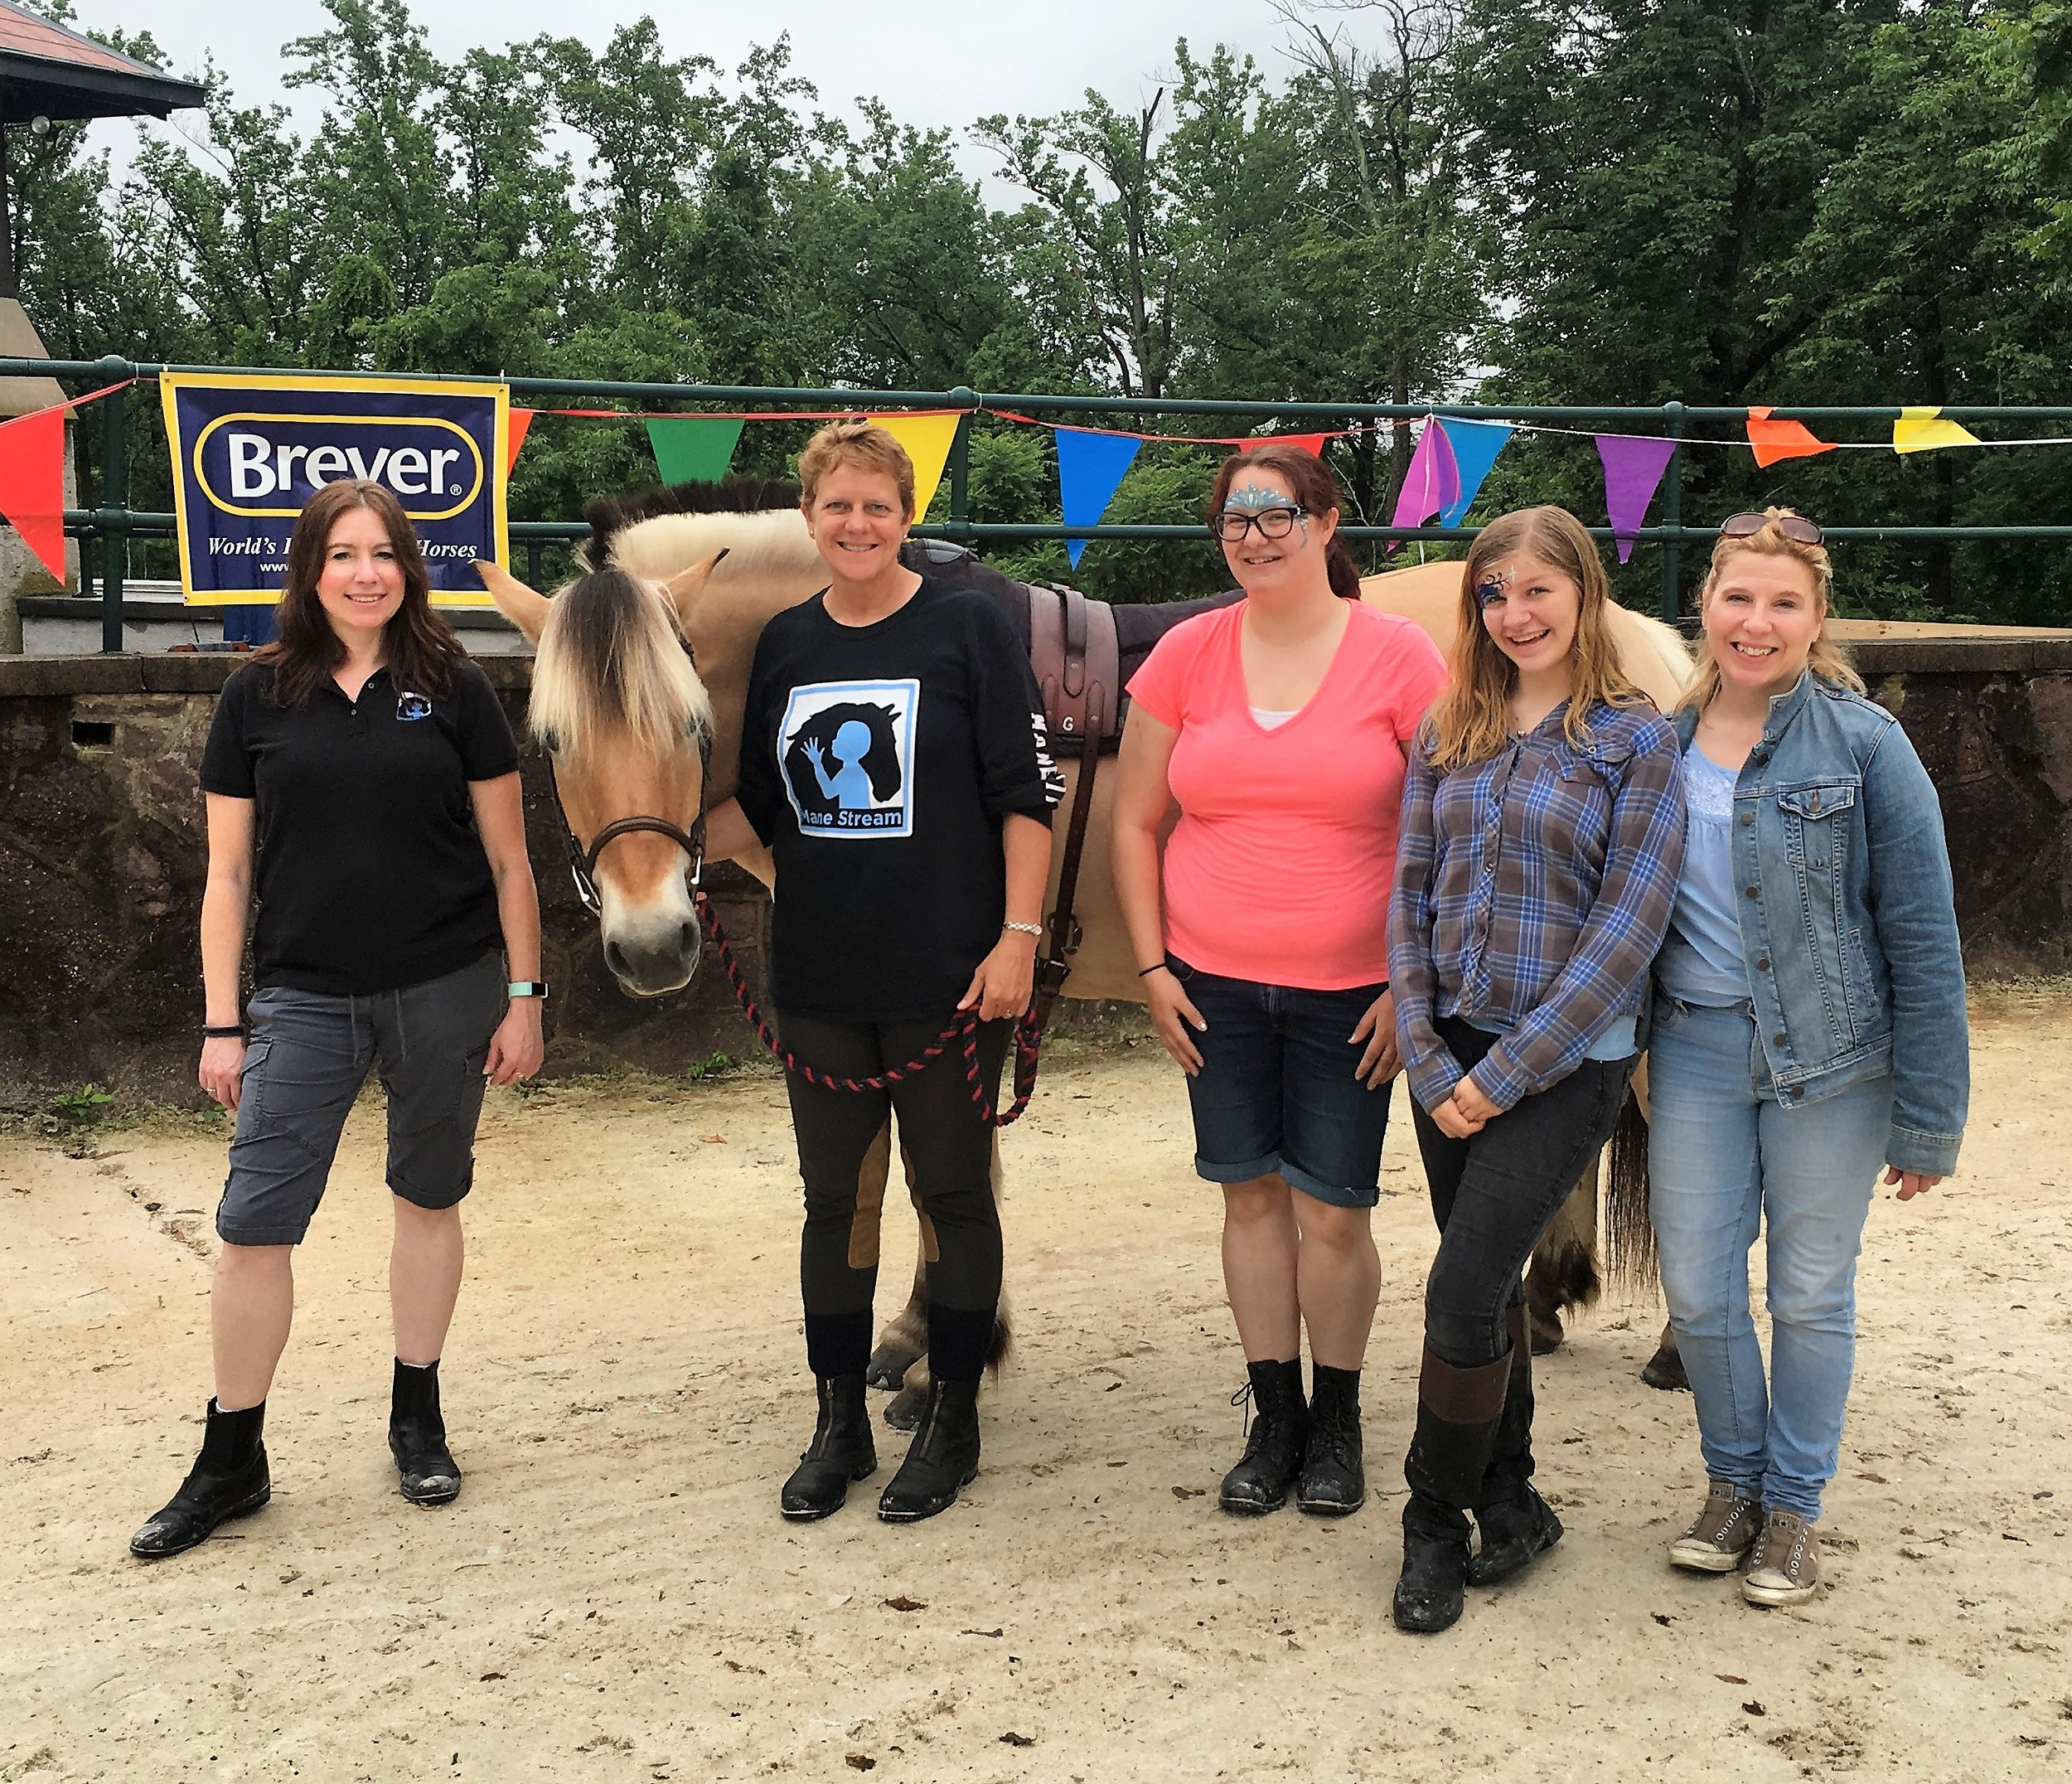 Special thanks to our volunteers Tara Pfunke, Amy Barkman, Samantha Gonzalez, Bridget & Mary Ann Torcivia for all of their help representing Mane Stream at Pony Up 2017!